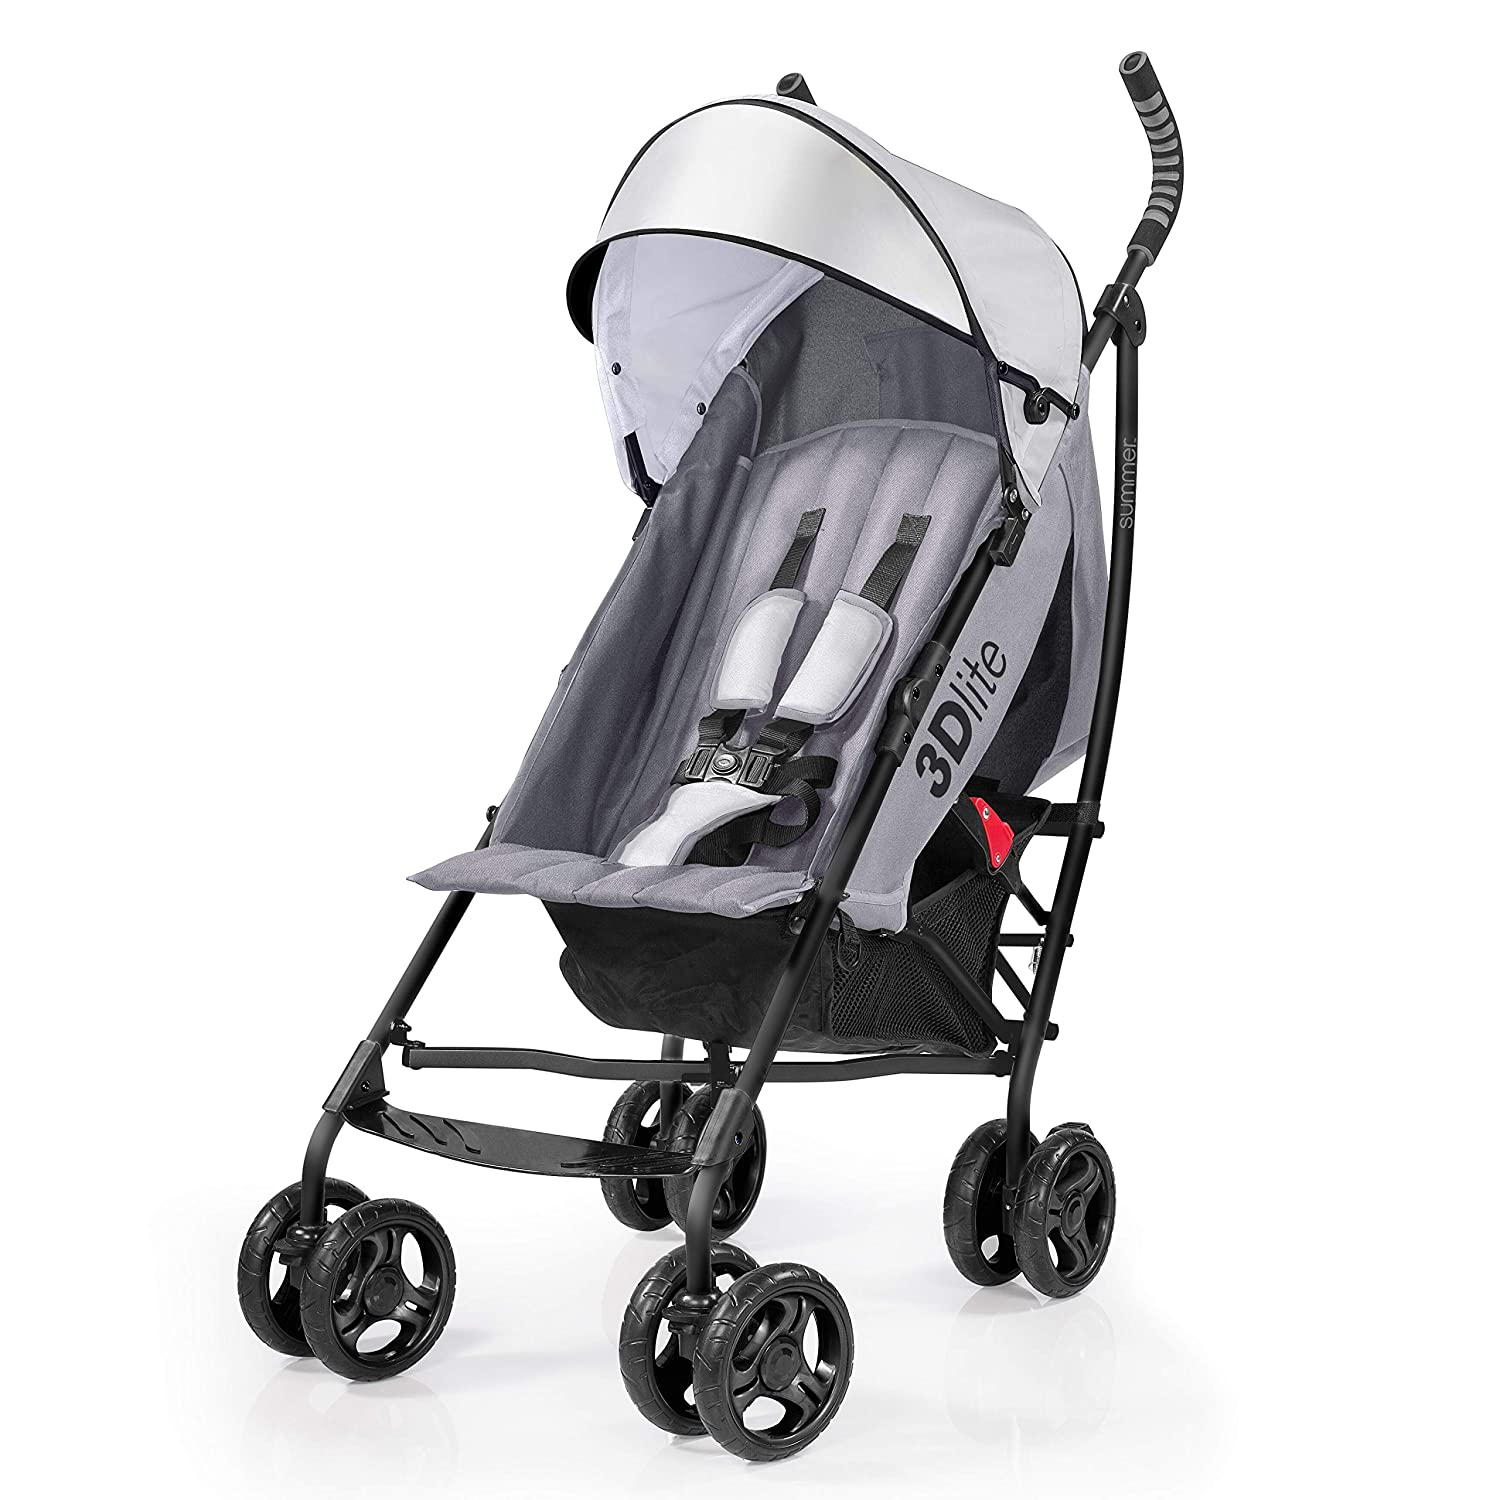 New Black Summer Infant 2015 3D Lite Convenience Stroller FAST SHIPPING!